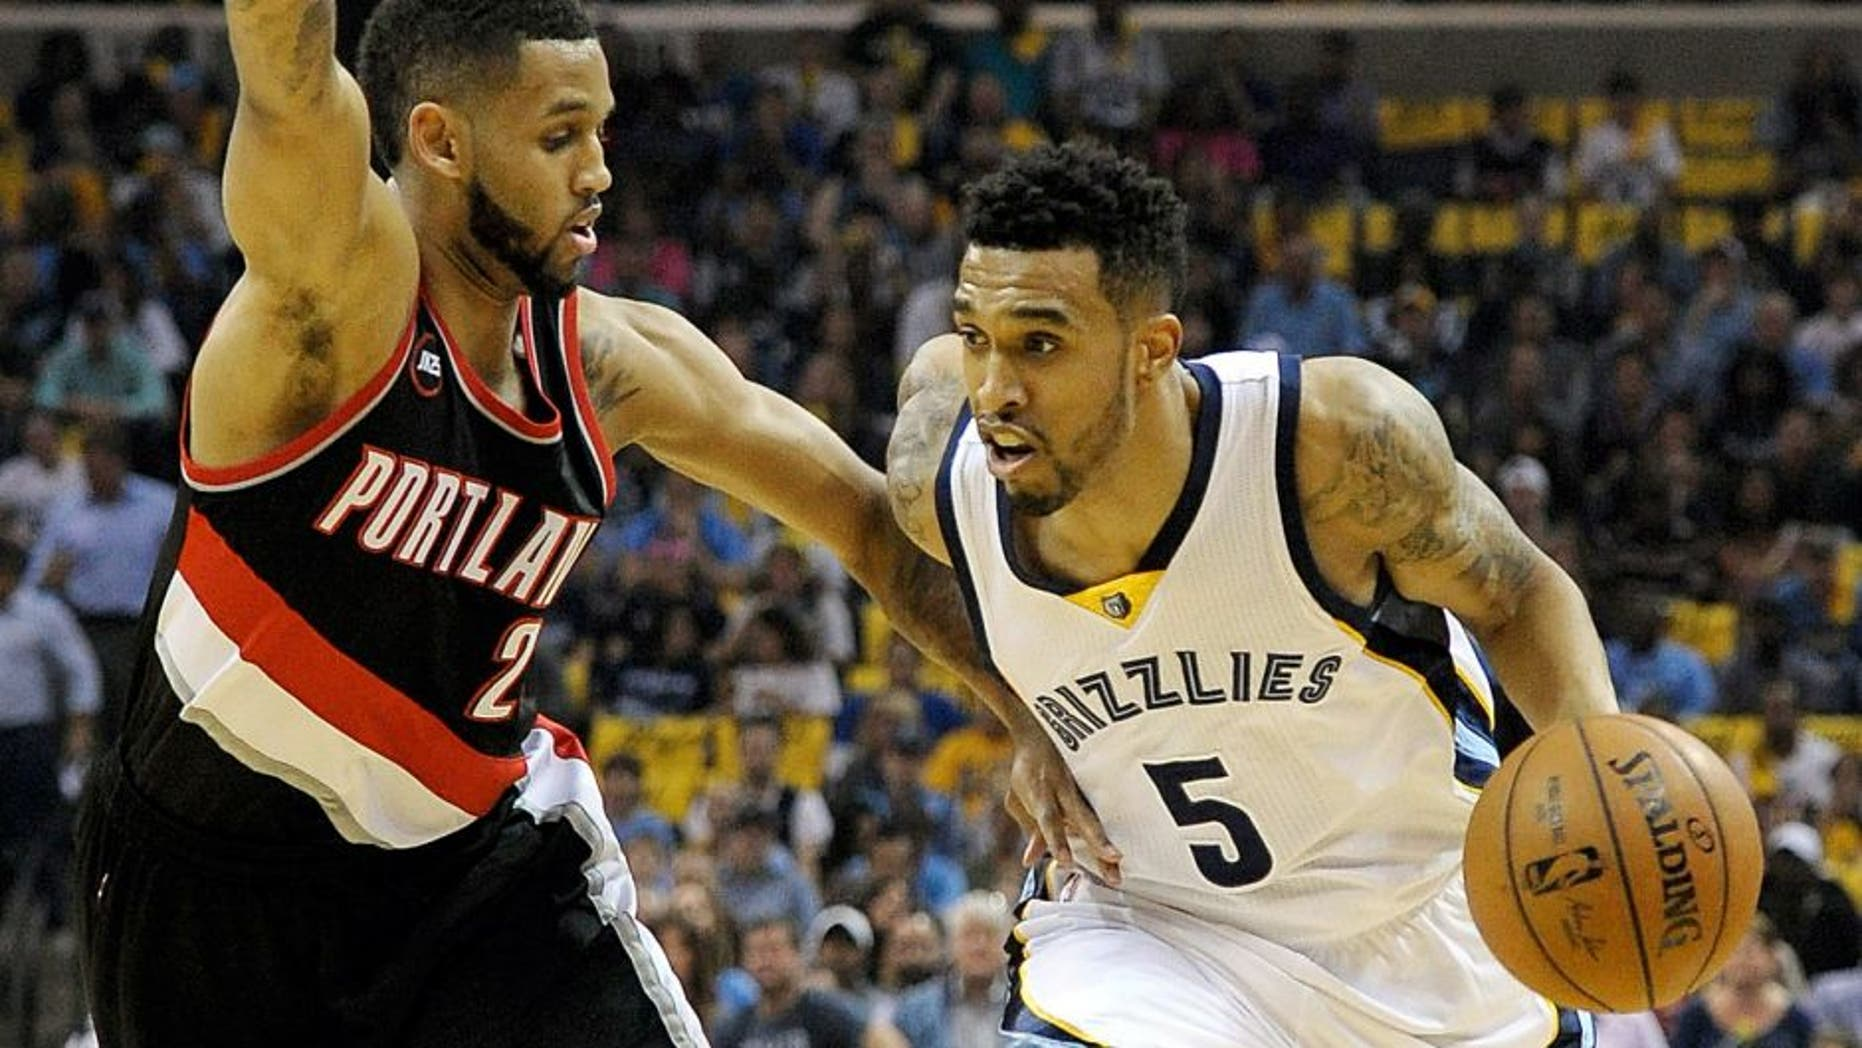 Apr 22, 2015; Memphis, TN, USA; Memphis Grizzlies guard Courtney Lee (5) drives to the basket against Portland Trail Blazers forward Allen Crabbe (23) in game two of the first round of the NBA Playoffs at FedExForum. Mandatory Credit: Justin Ford-USA TODAY Sports